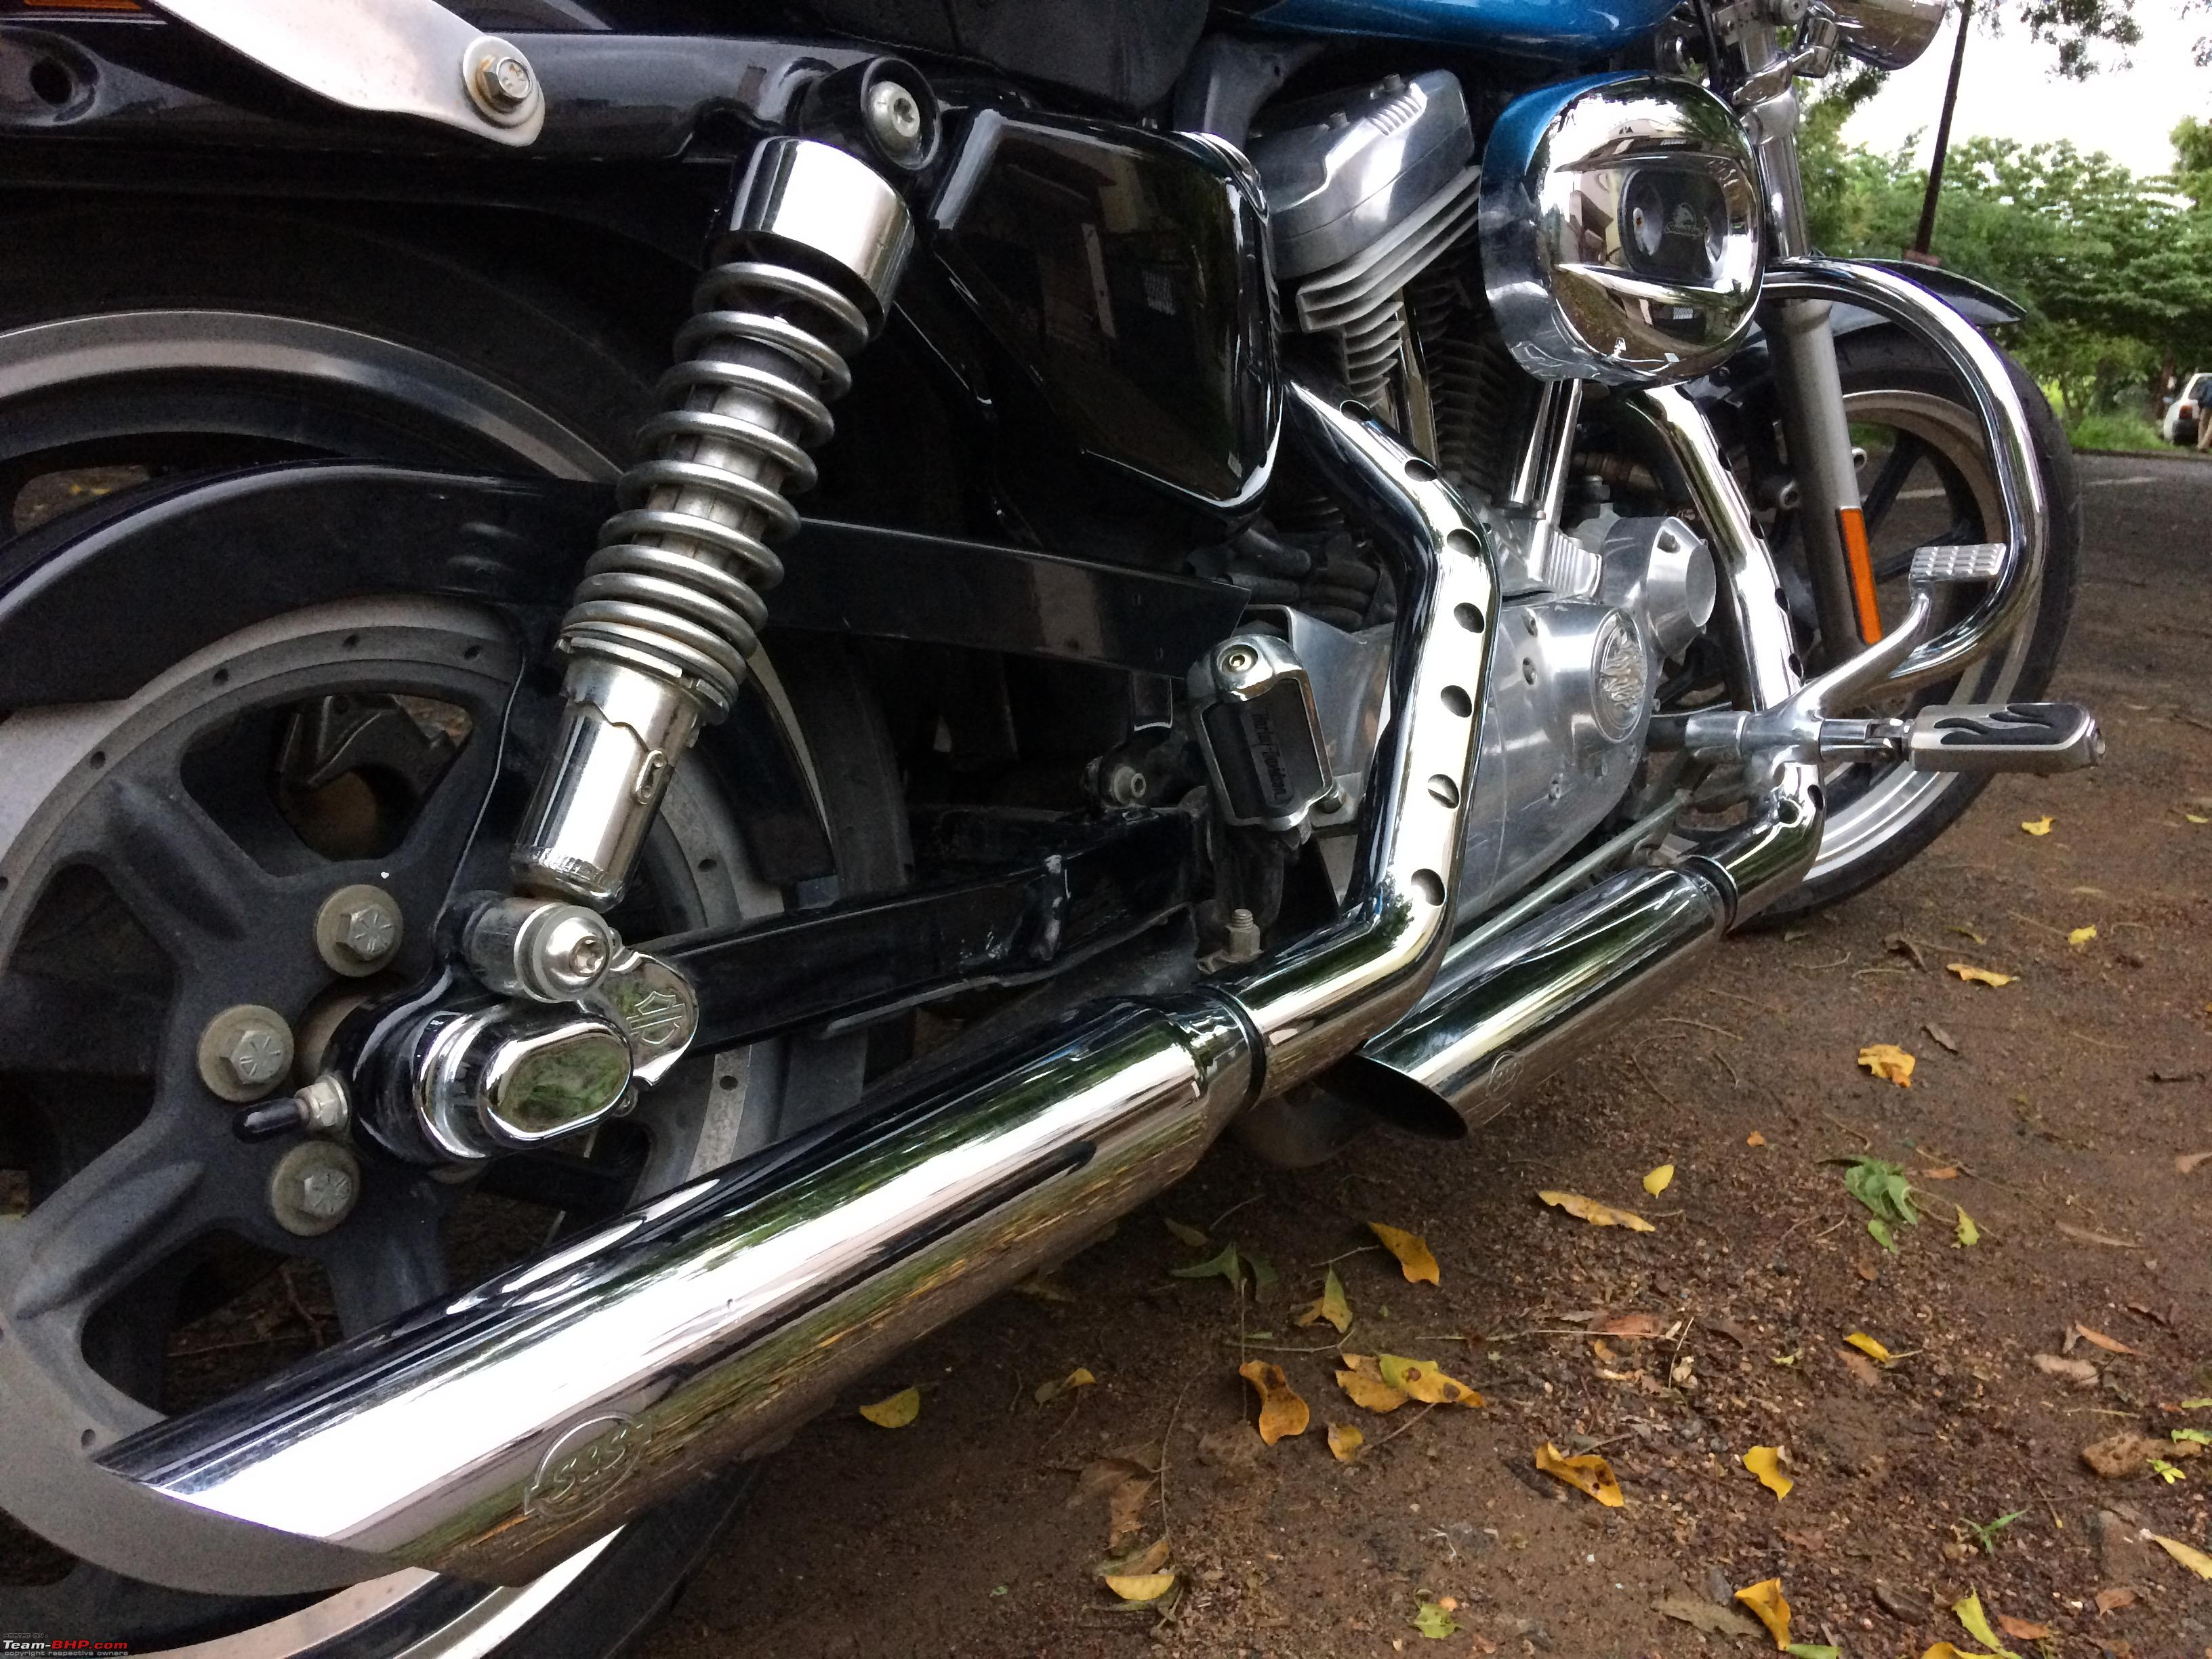 Ownership review : My preowned Harley-Davidson SuperLow